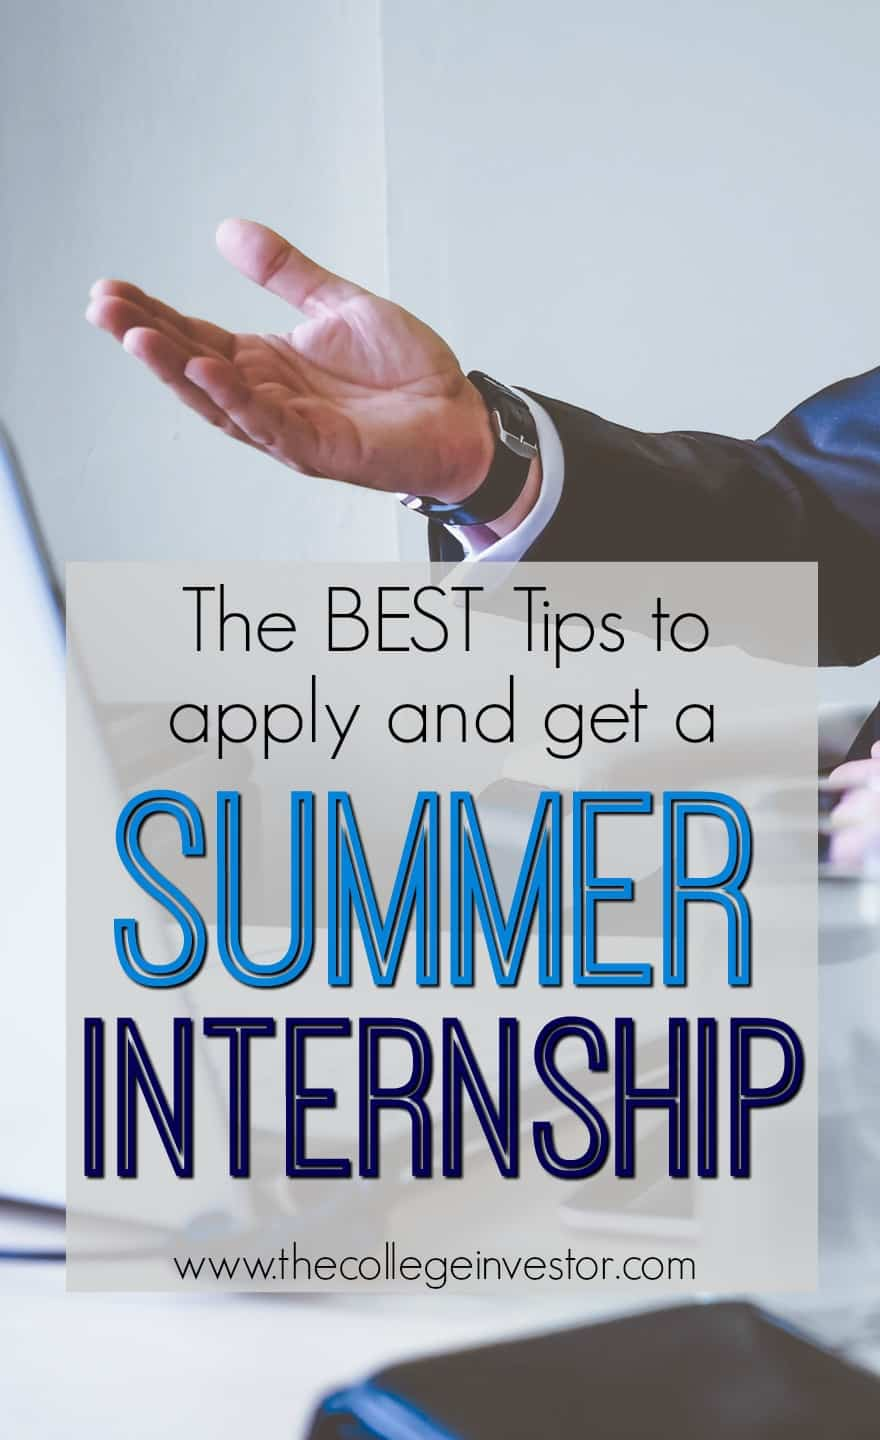 Summer is quickly approaching but you still have time left! Here's how to apply and get a summer internship.